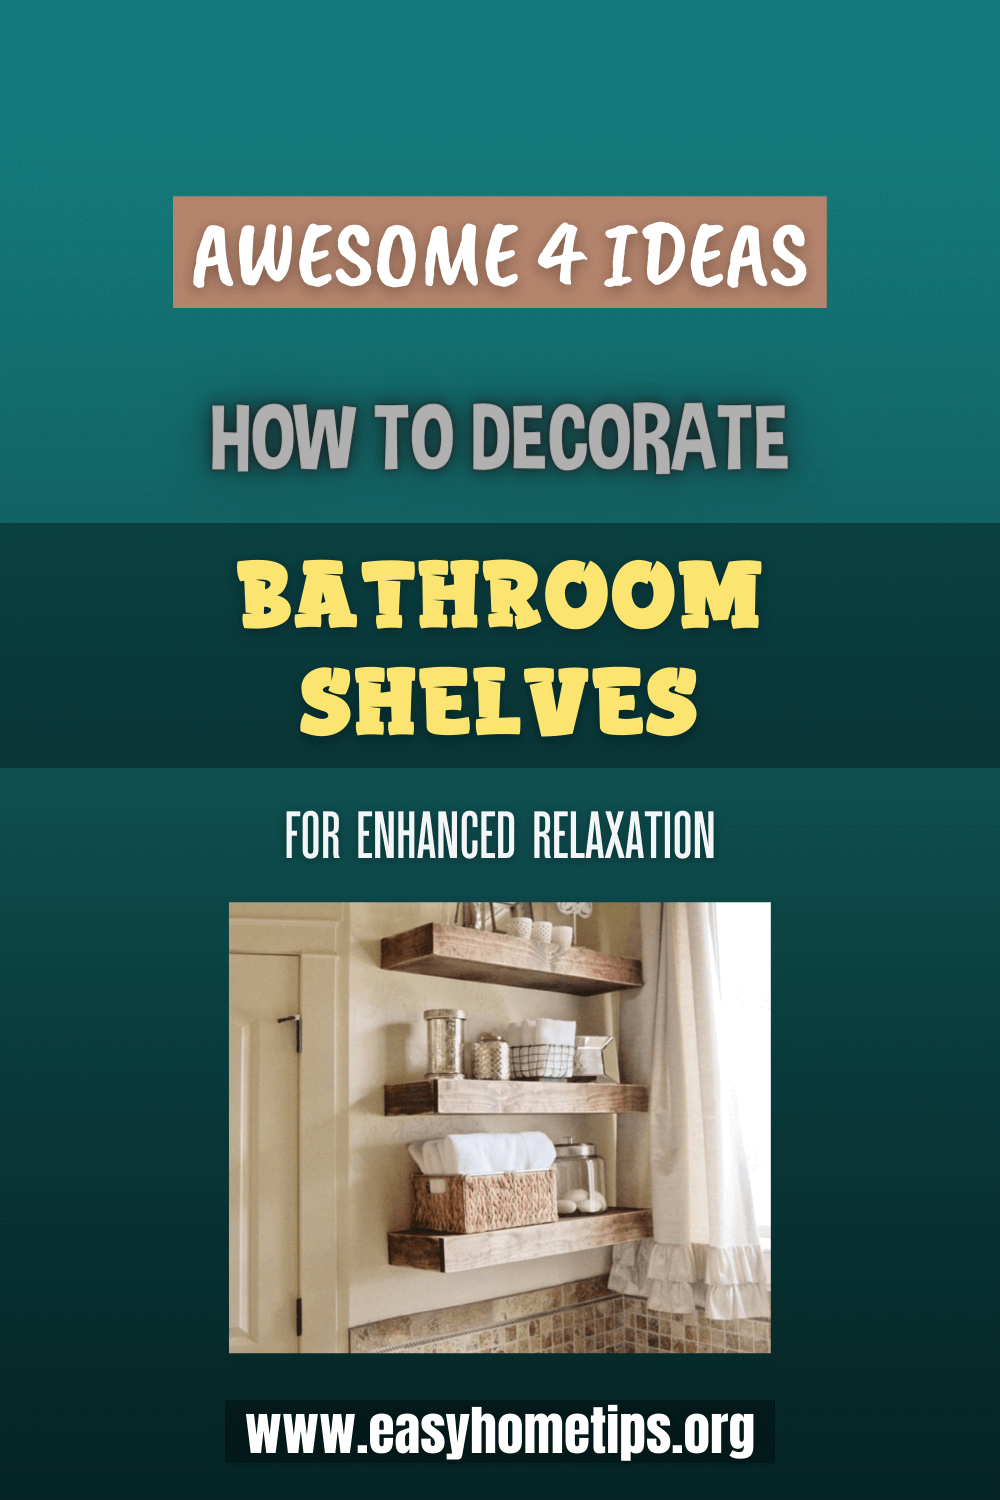 AWESOME 4 IDEAS HOW TO DECORATE BATHROOM SHELVES FOR ENHANCED RELAXATION